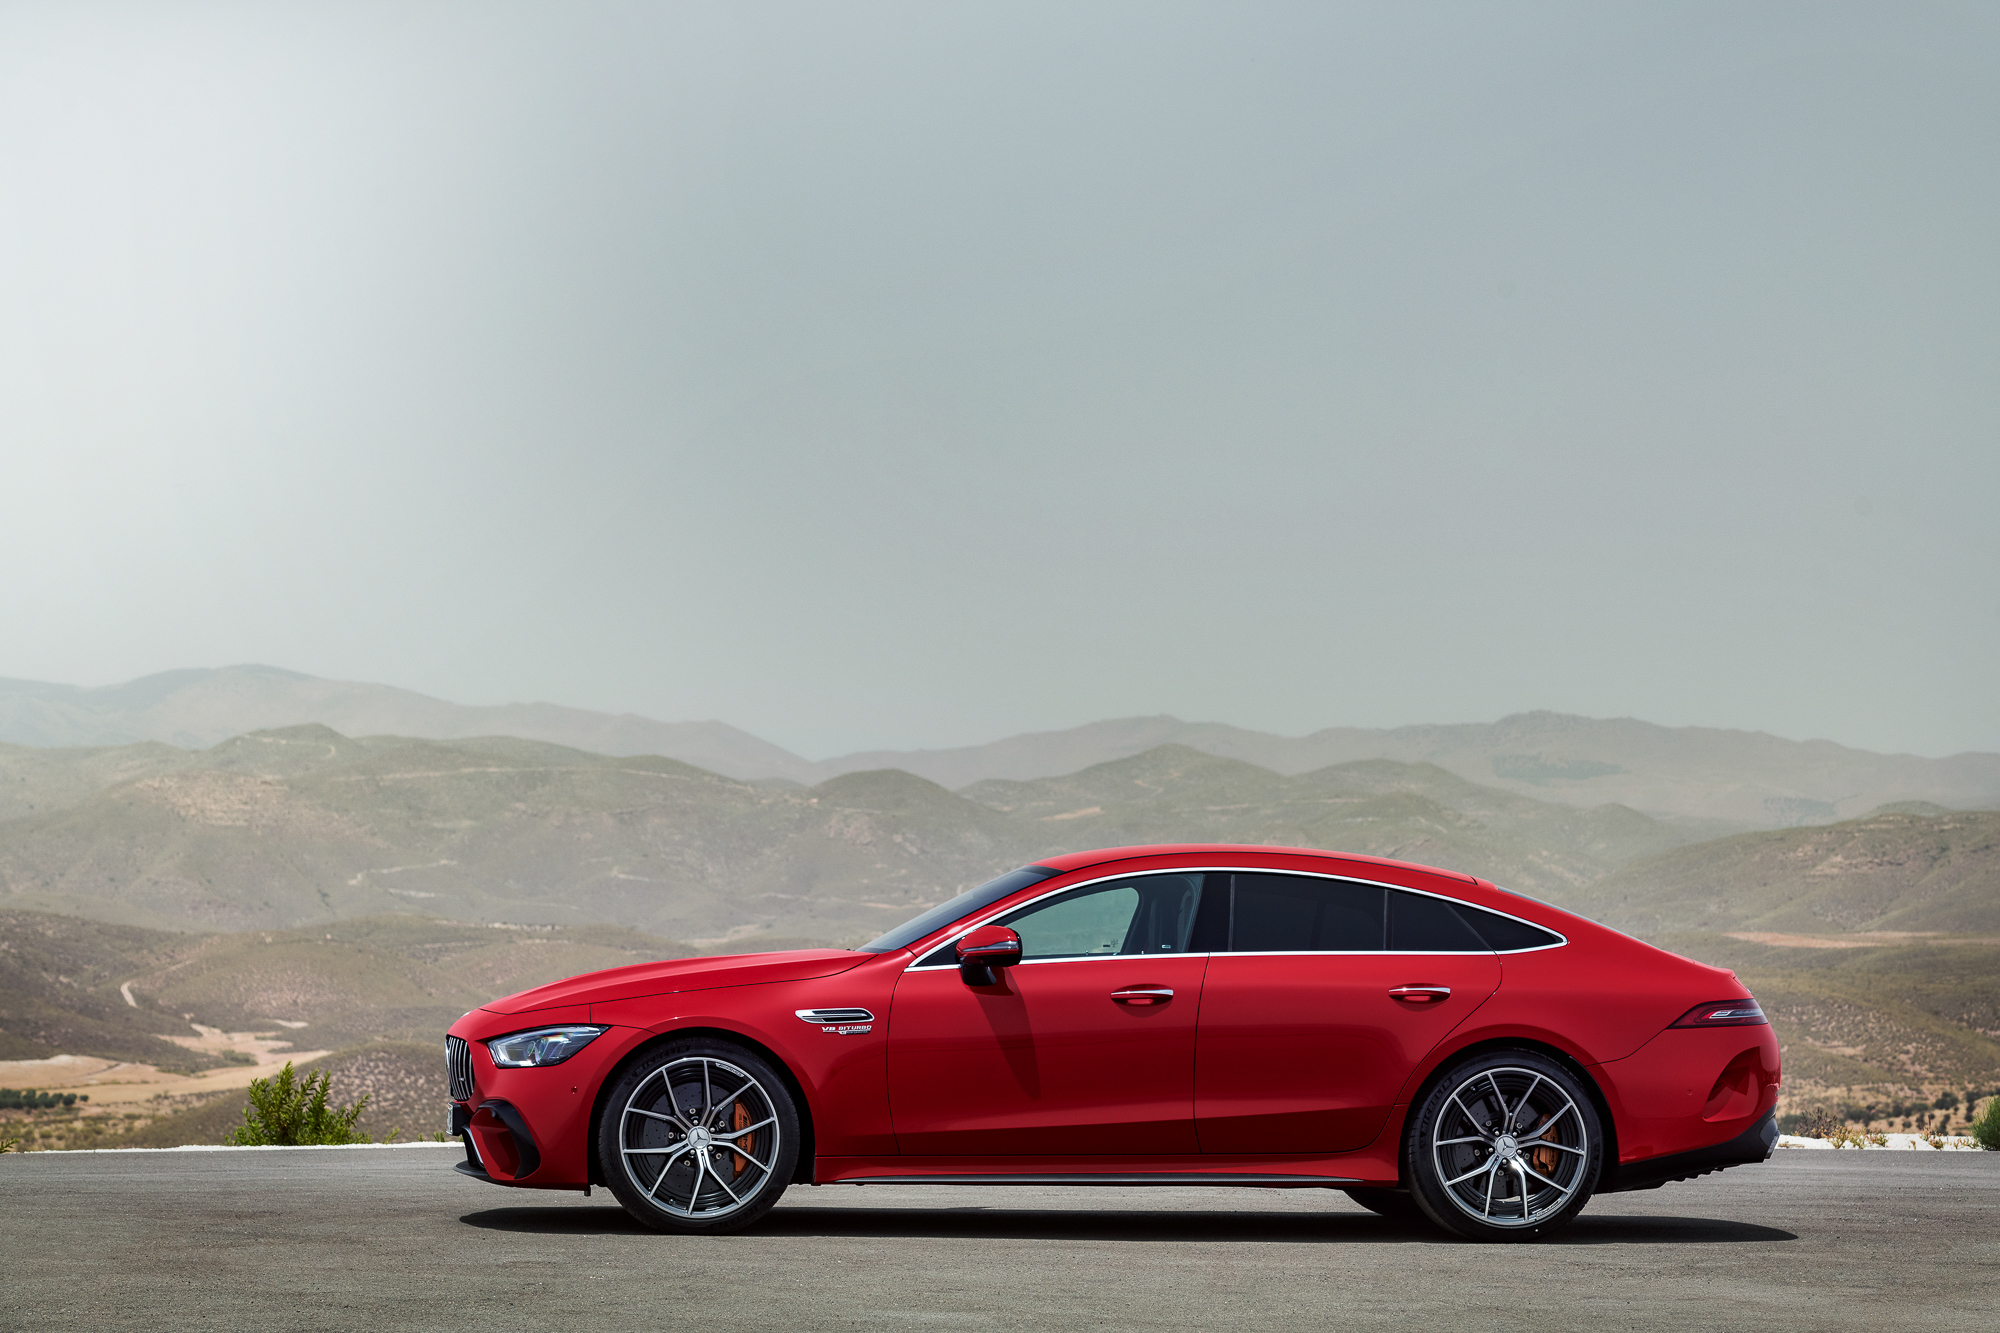 2023-Mercedes-AMG-GT-63-S-E-Performance side profile